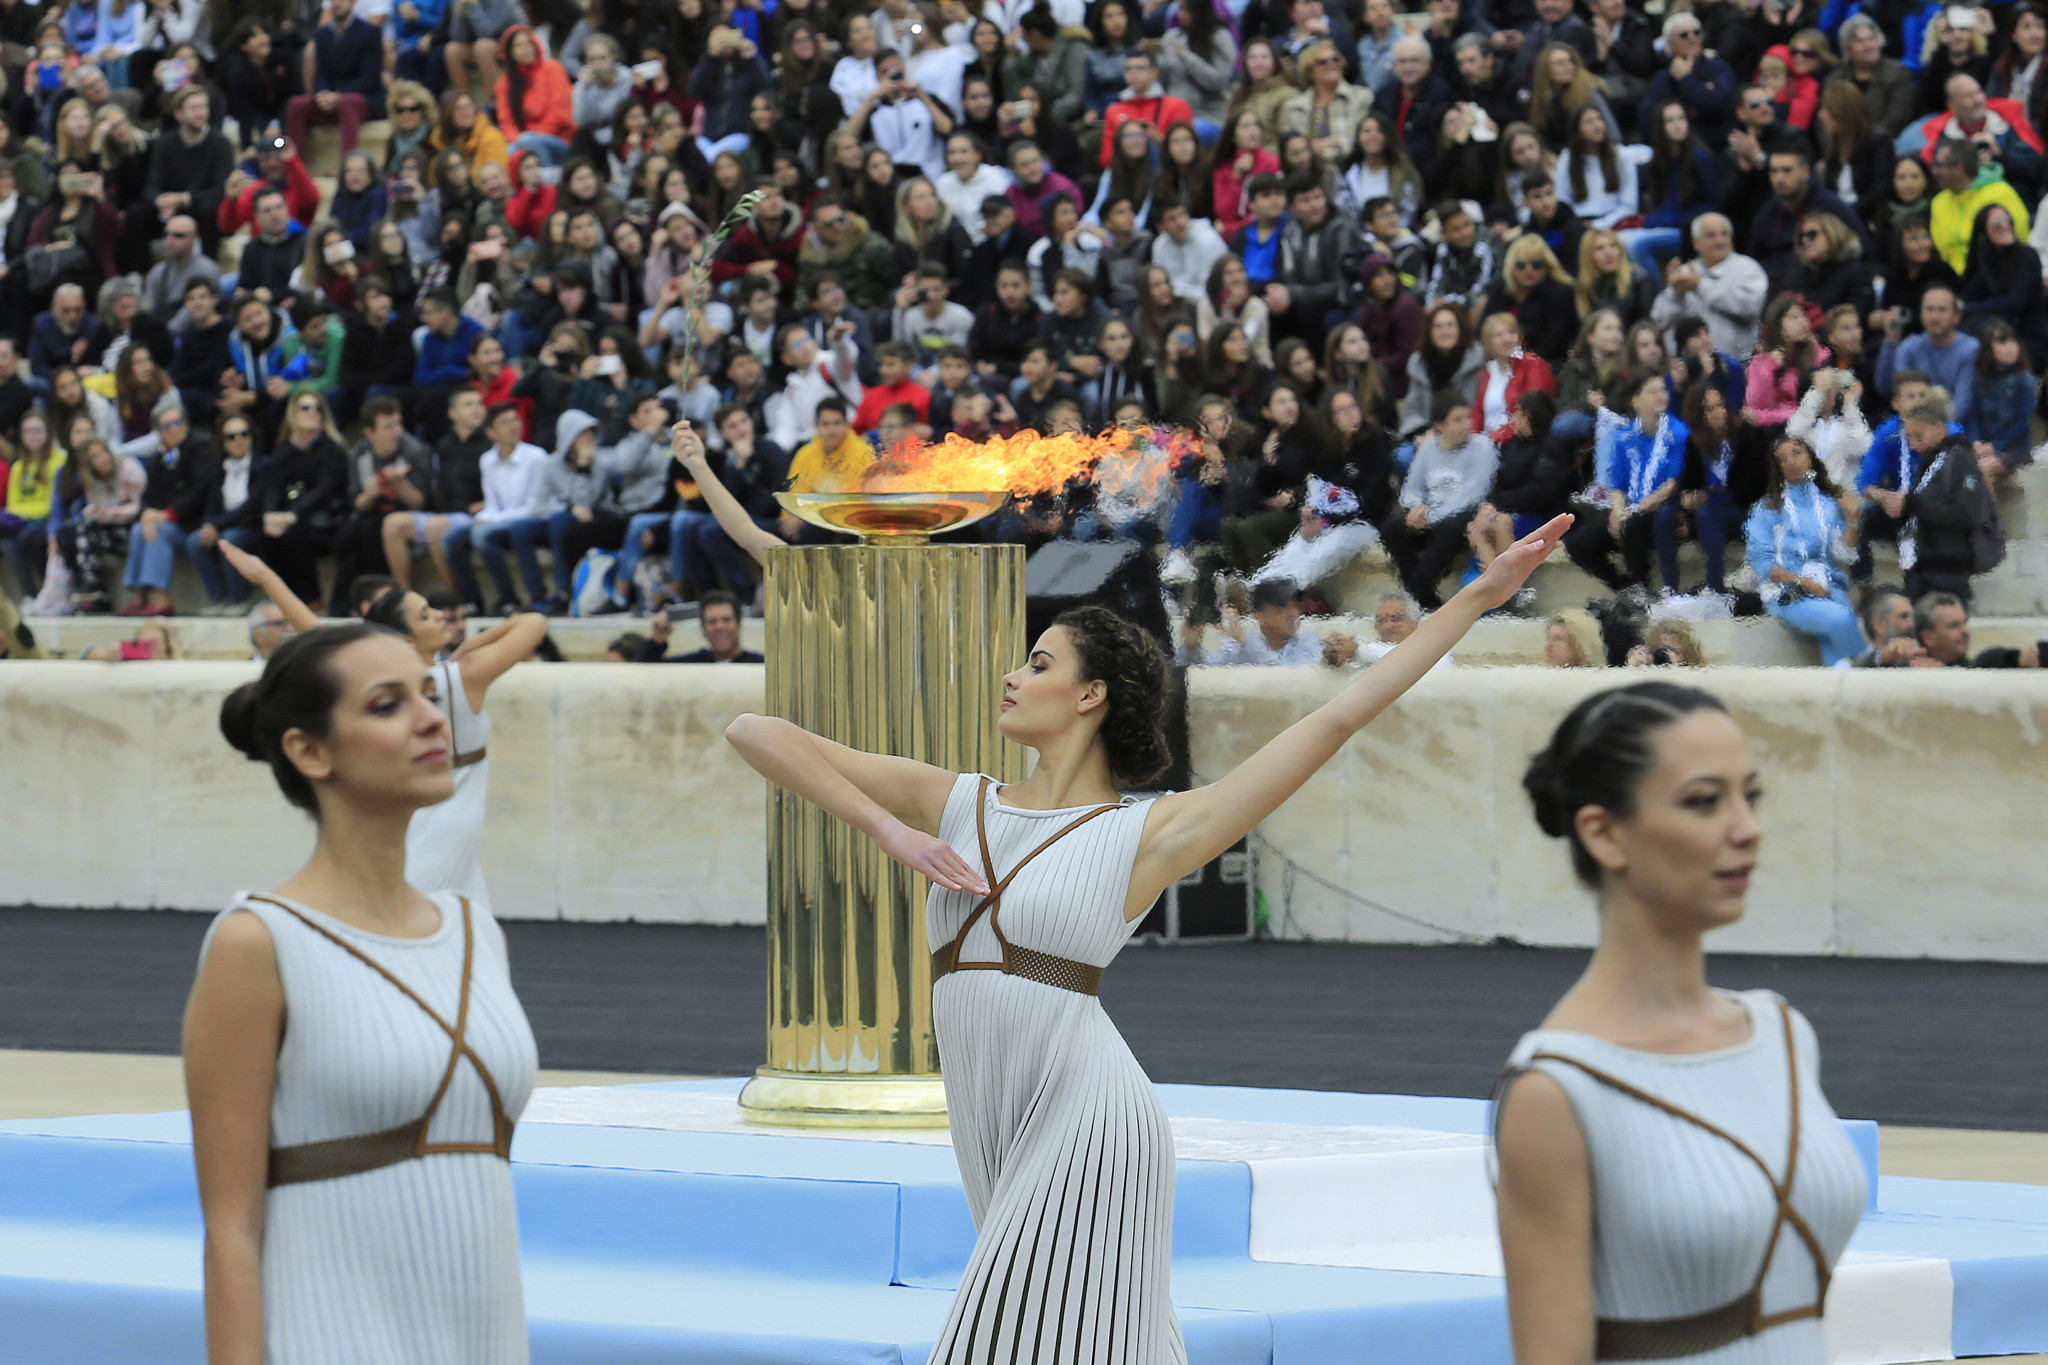 Olympic flame handover Ceremony to Tokyo 2020 to include performance inspired by Japanese culture